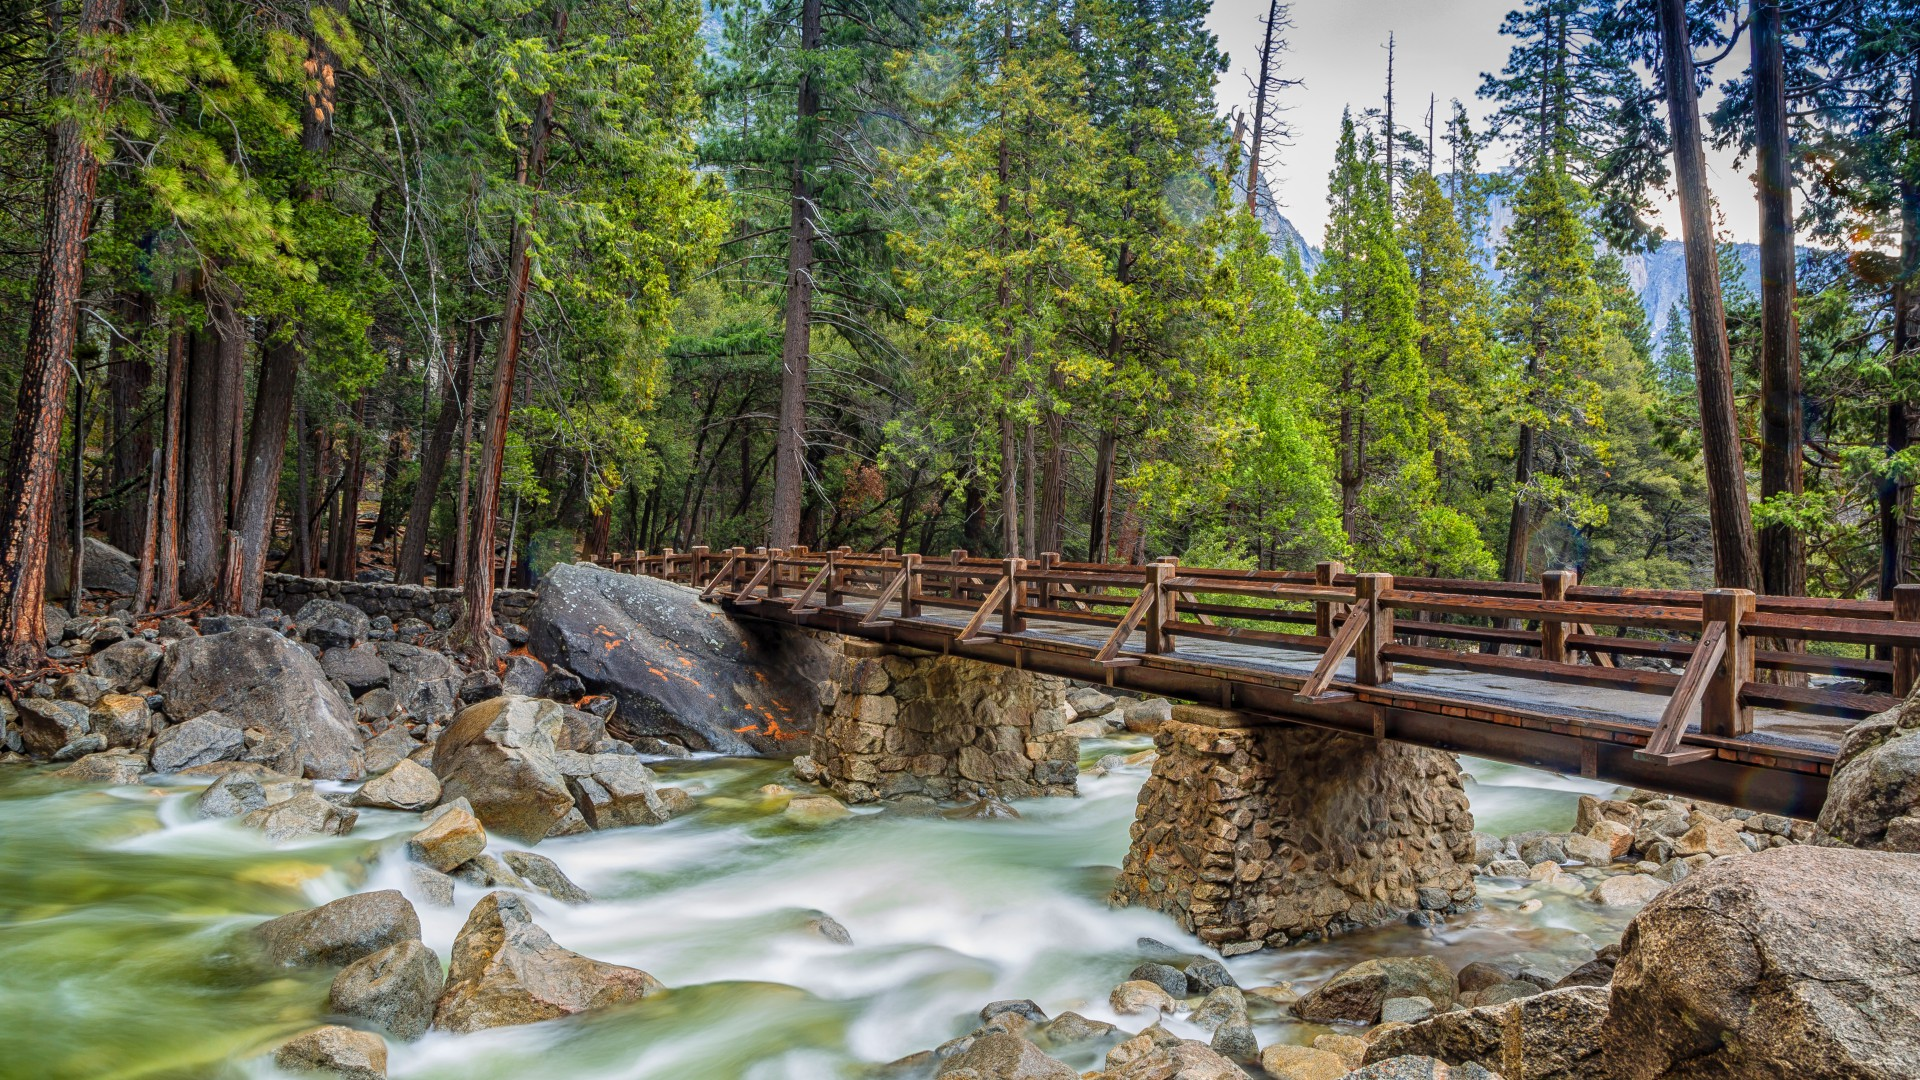 Yosemite, 5k, 4k wallpaper, 8k, forest, OSX, apple, mountains, bridge (horizontal)